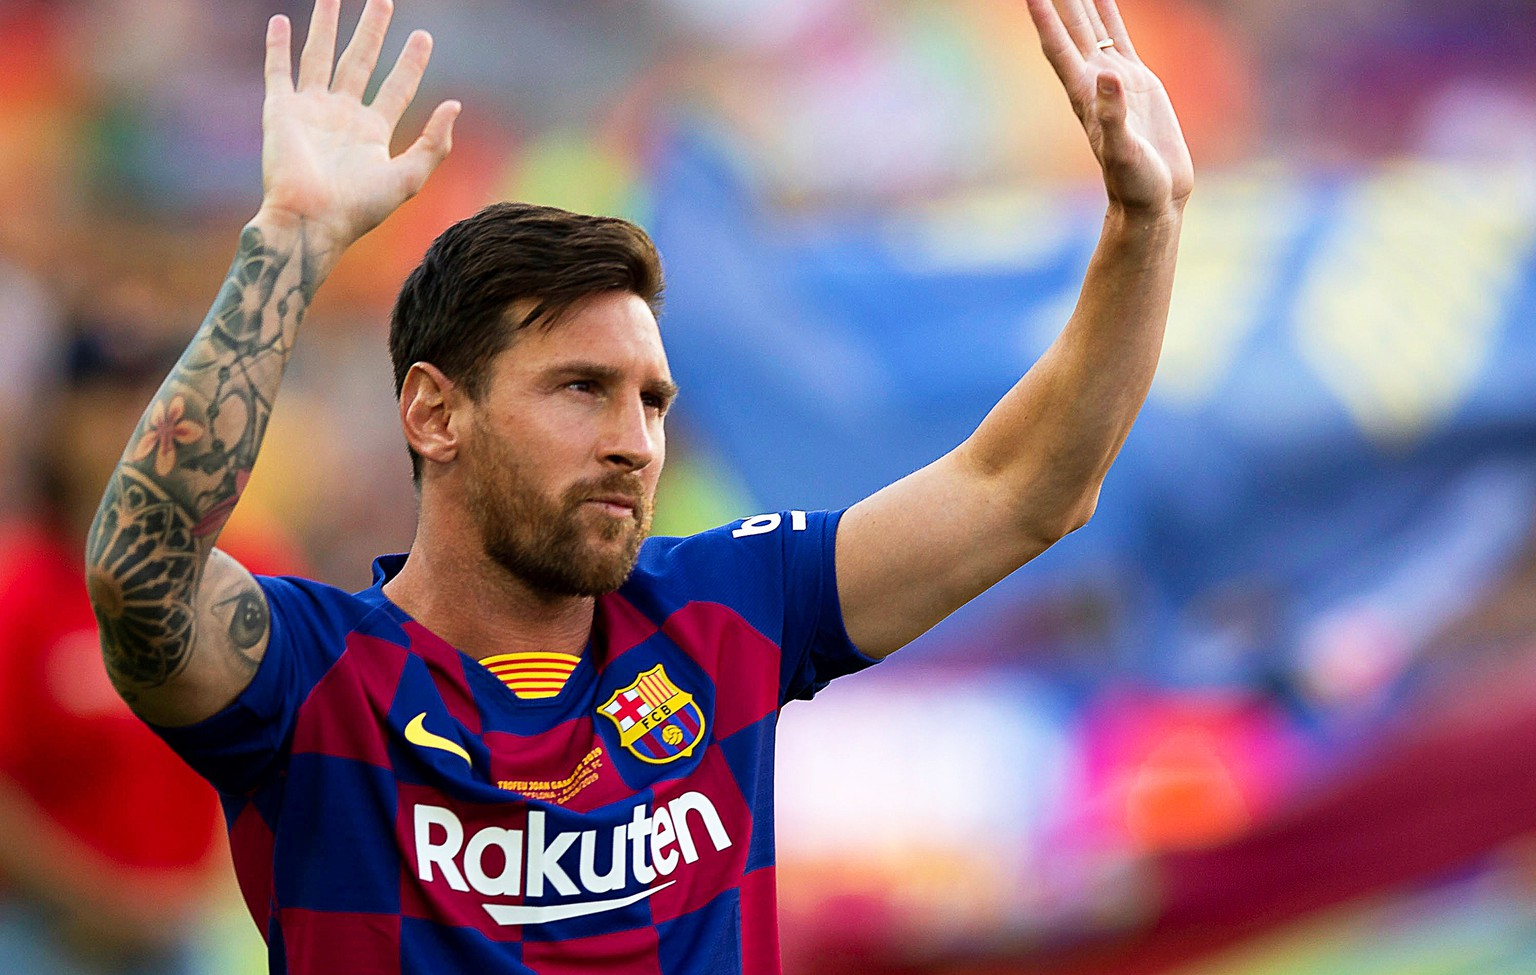 epa08625667 (FILE) - FC Barcelona's Argentinian forward Lionel Messi greets fans prior to the Joan Gamper Trophy soccer match between FC Barcelona and Arsenal FC at Camp Nou in Barcelona, Spain, 04 August 2019, re-issued 25 August 2020. Messi has sent a certified letter to the club  on 25 August communicating his intentions to leave the club.  EPA/ANDREU DALMAU *** Local Caption *** 55378795